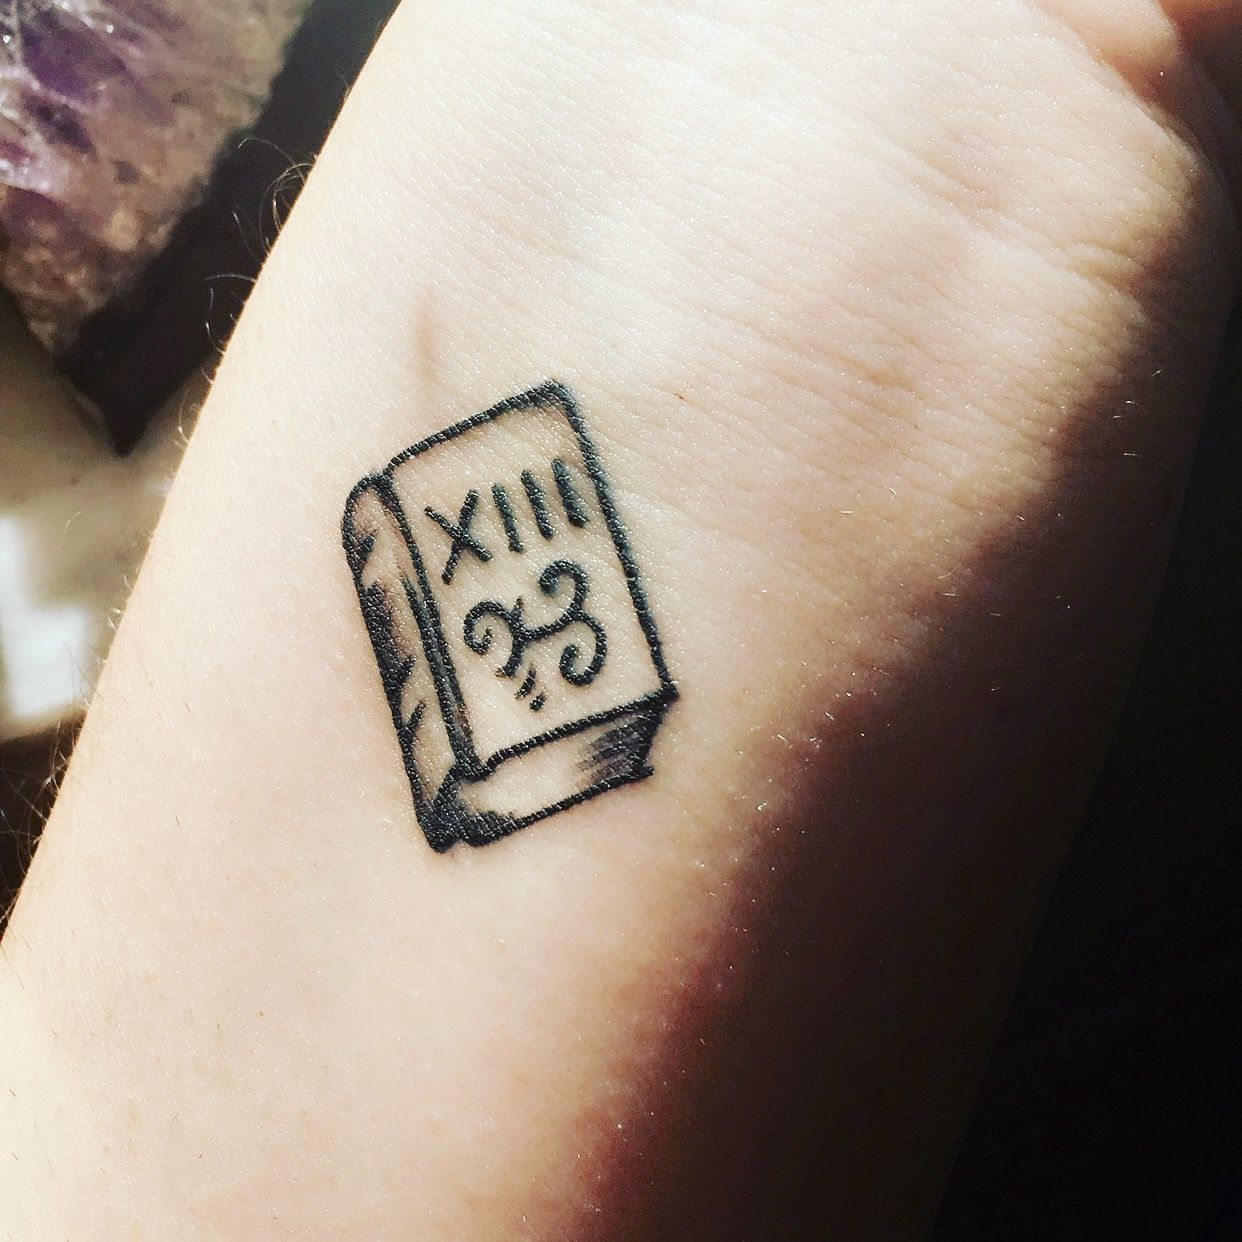 My Book Tattoo For Friday The 13th I Love How Small And Cute It Is 3 Friday The 13th Tattoo Book Tattoo 13 Tattoos